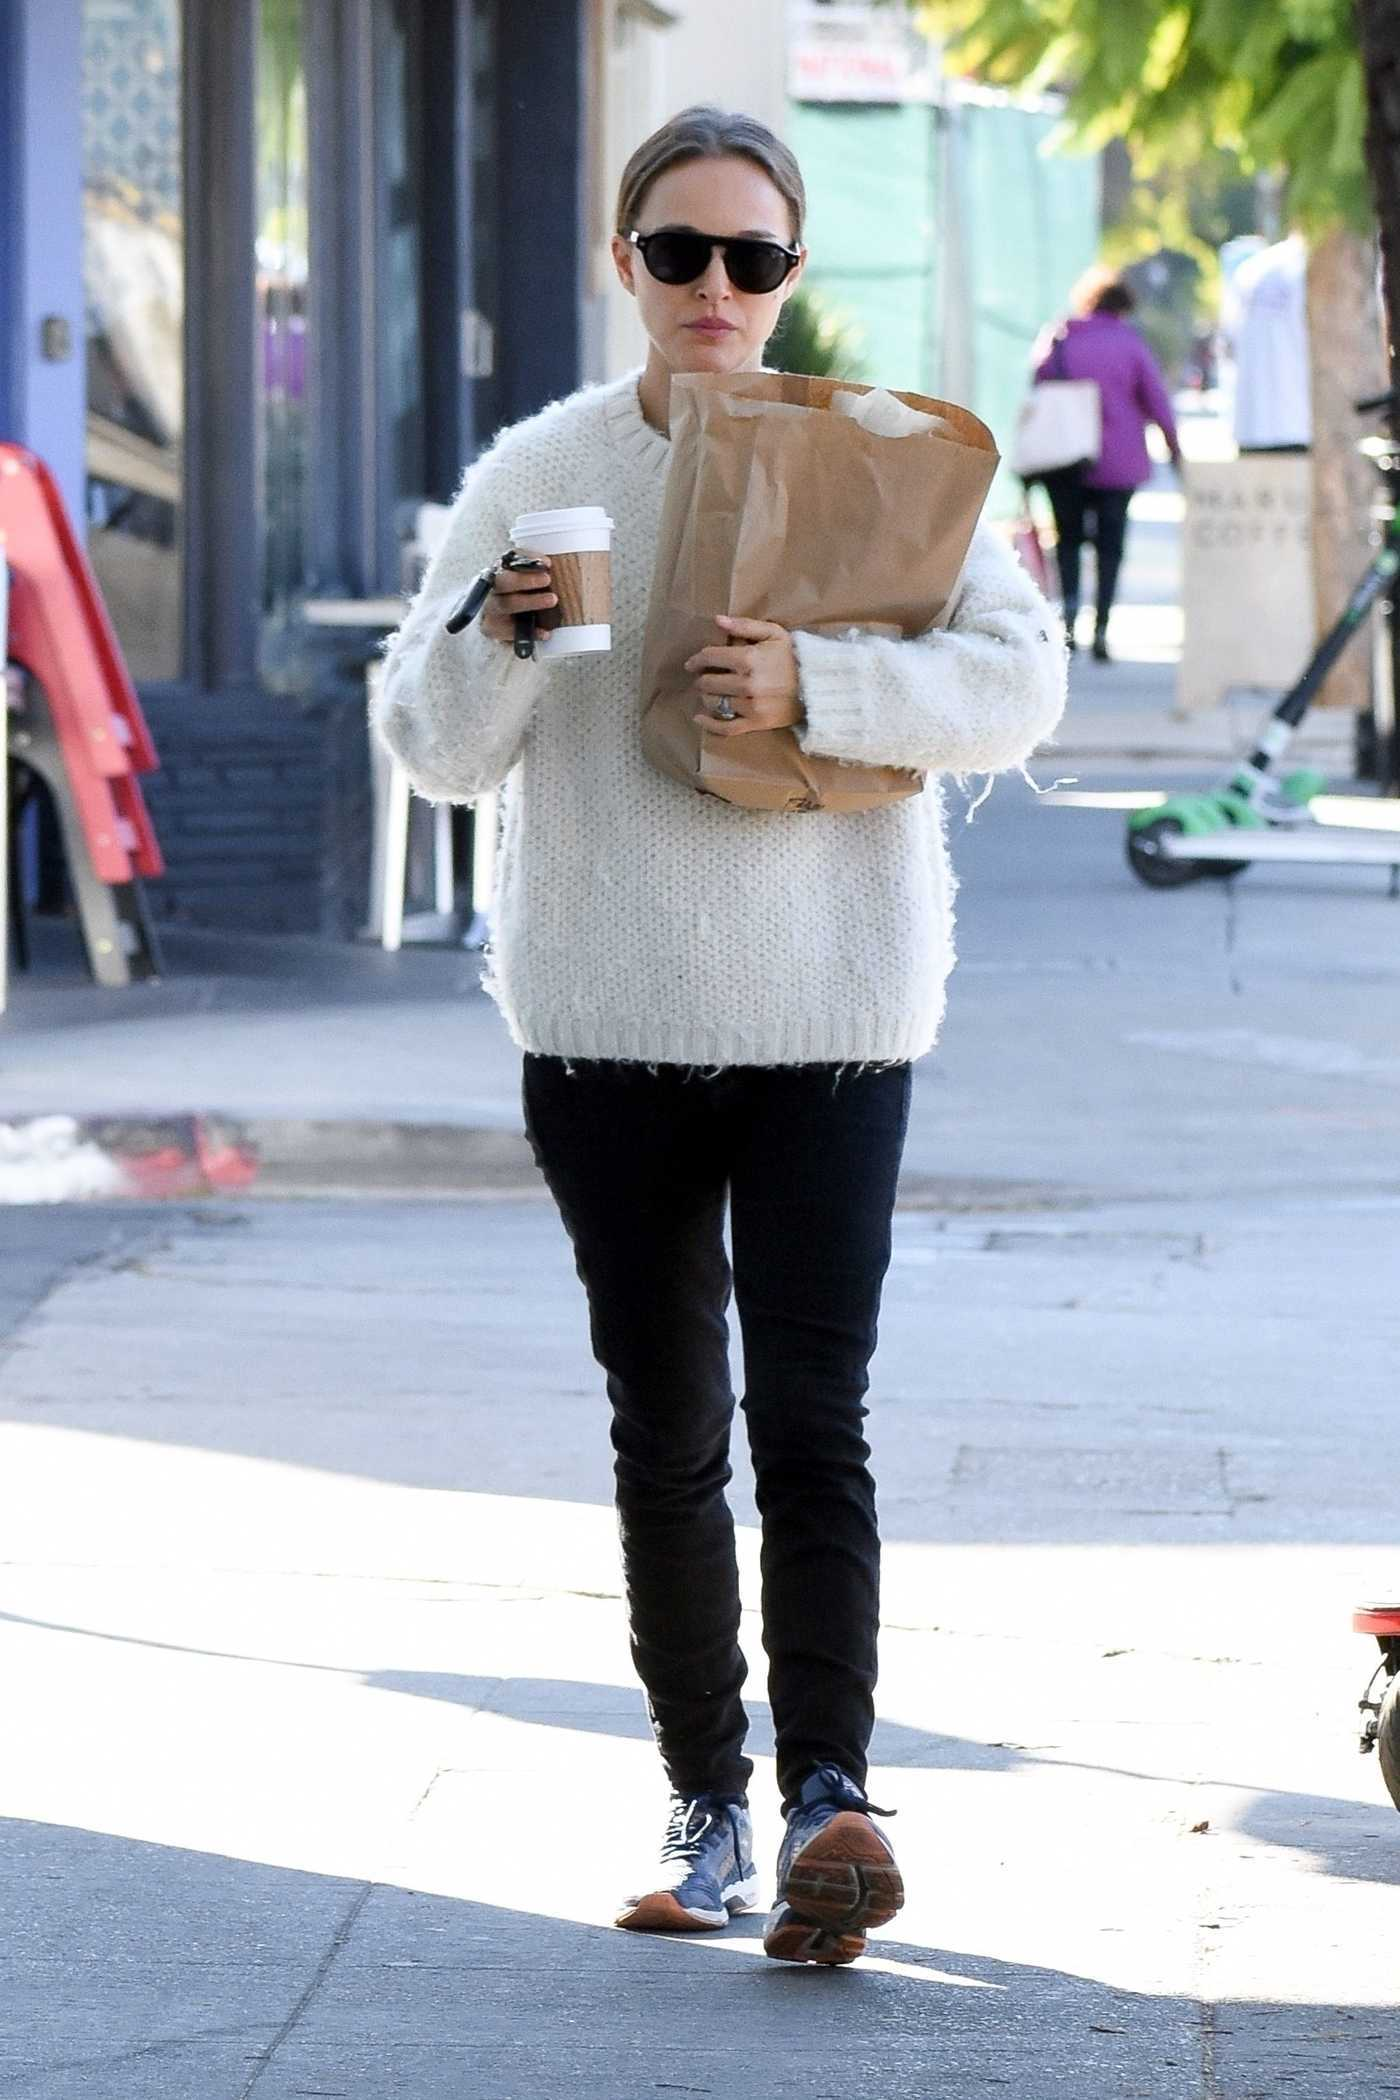 Natalie Portman in a White Sweater Does a Morning Grocery Run in Los Feliz 01/04/2019